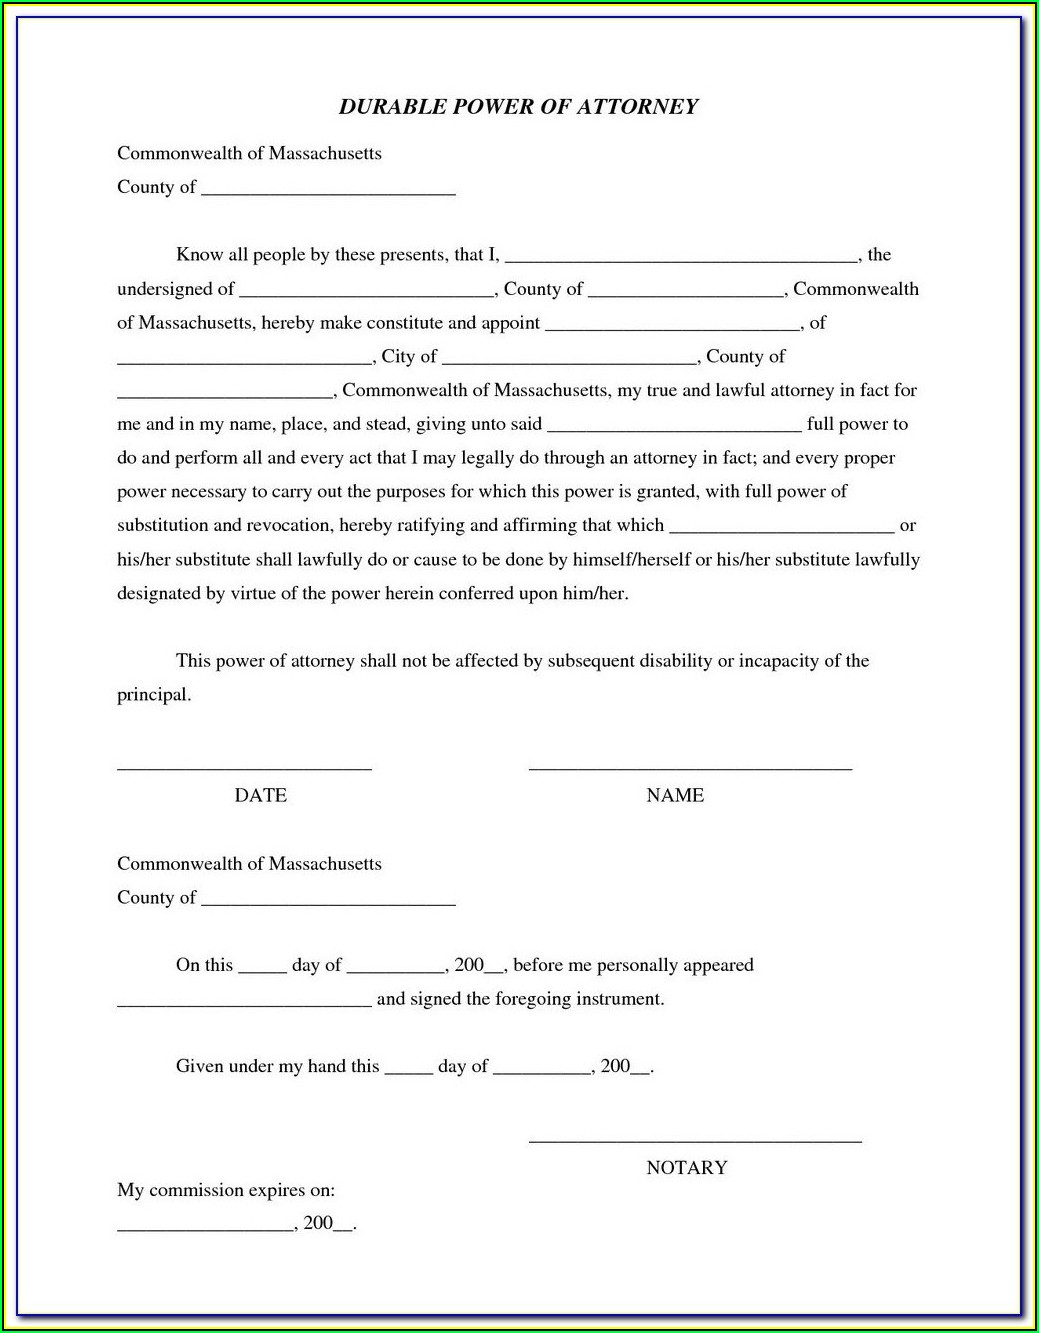 Pa Durable Power Of Attorney Form 2015